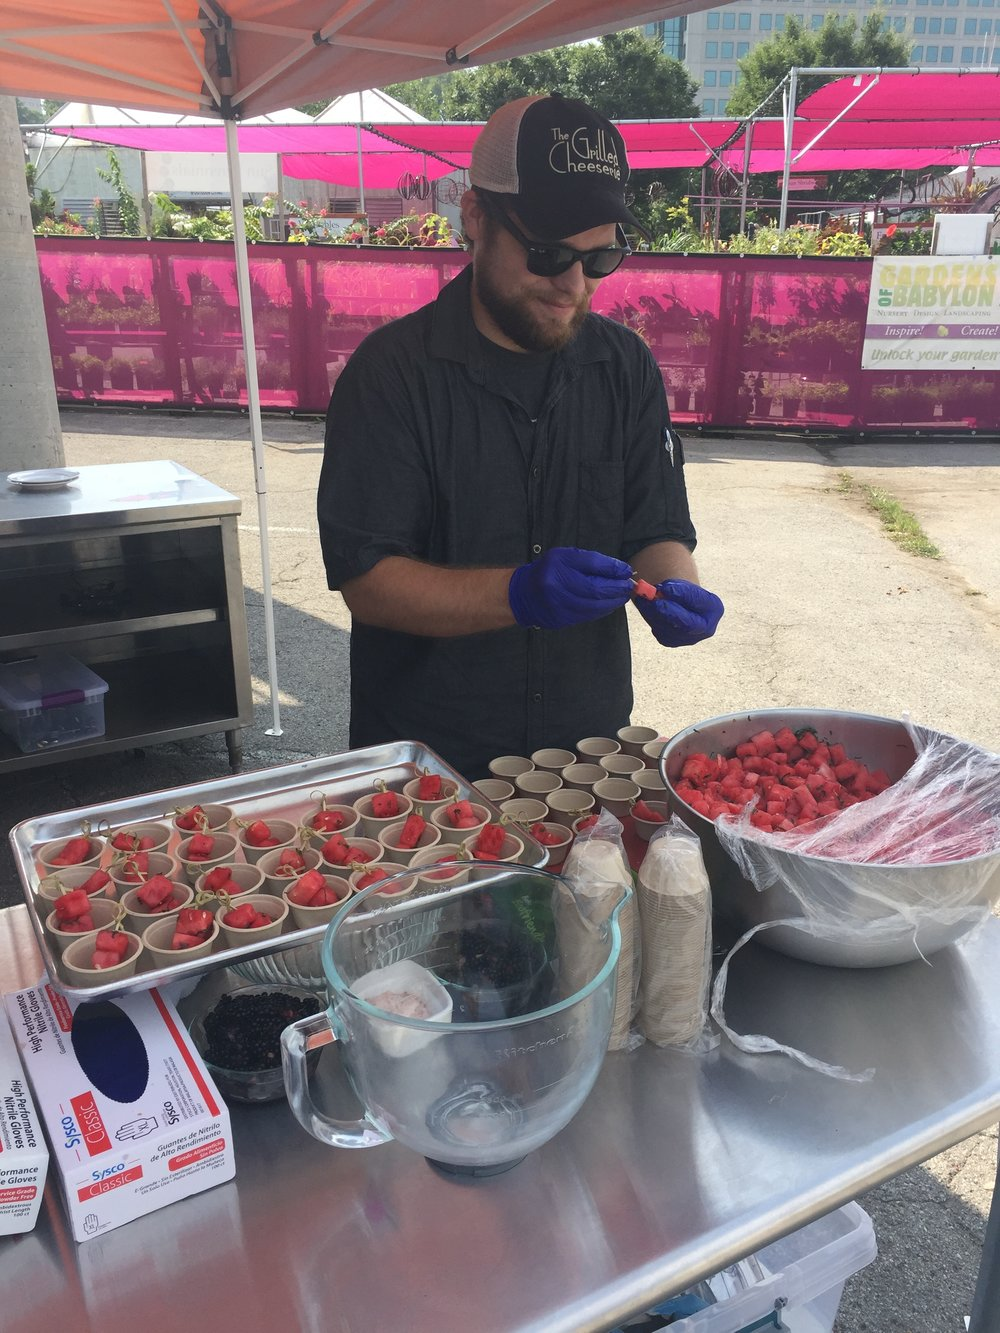 Production Chef Taylor, making  hundreds of samples on Watermelon Fest Day